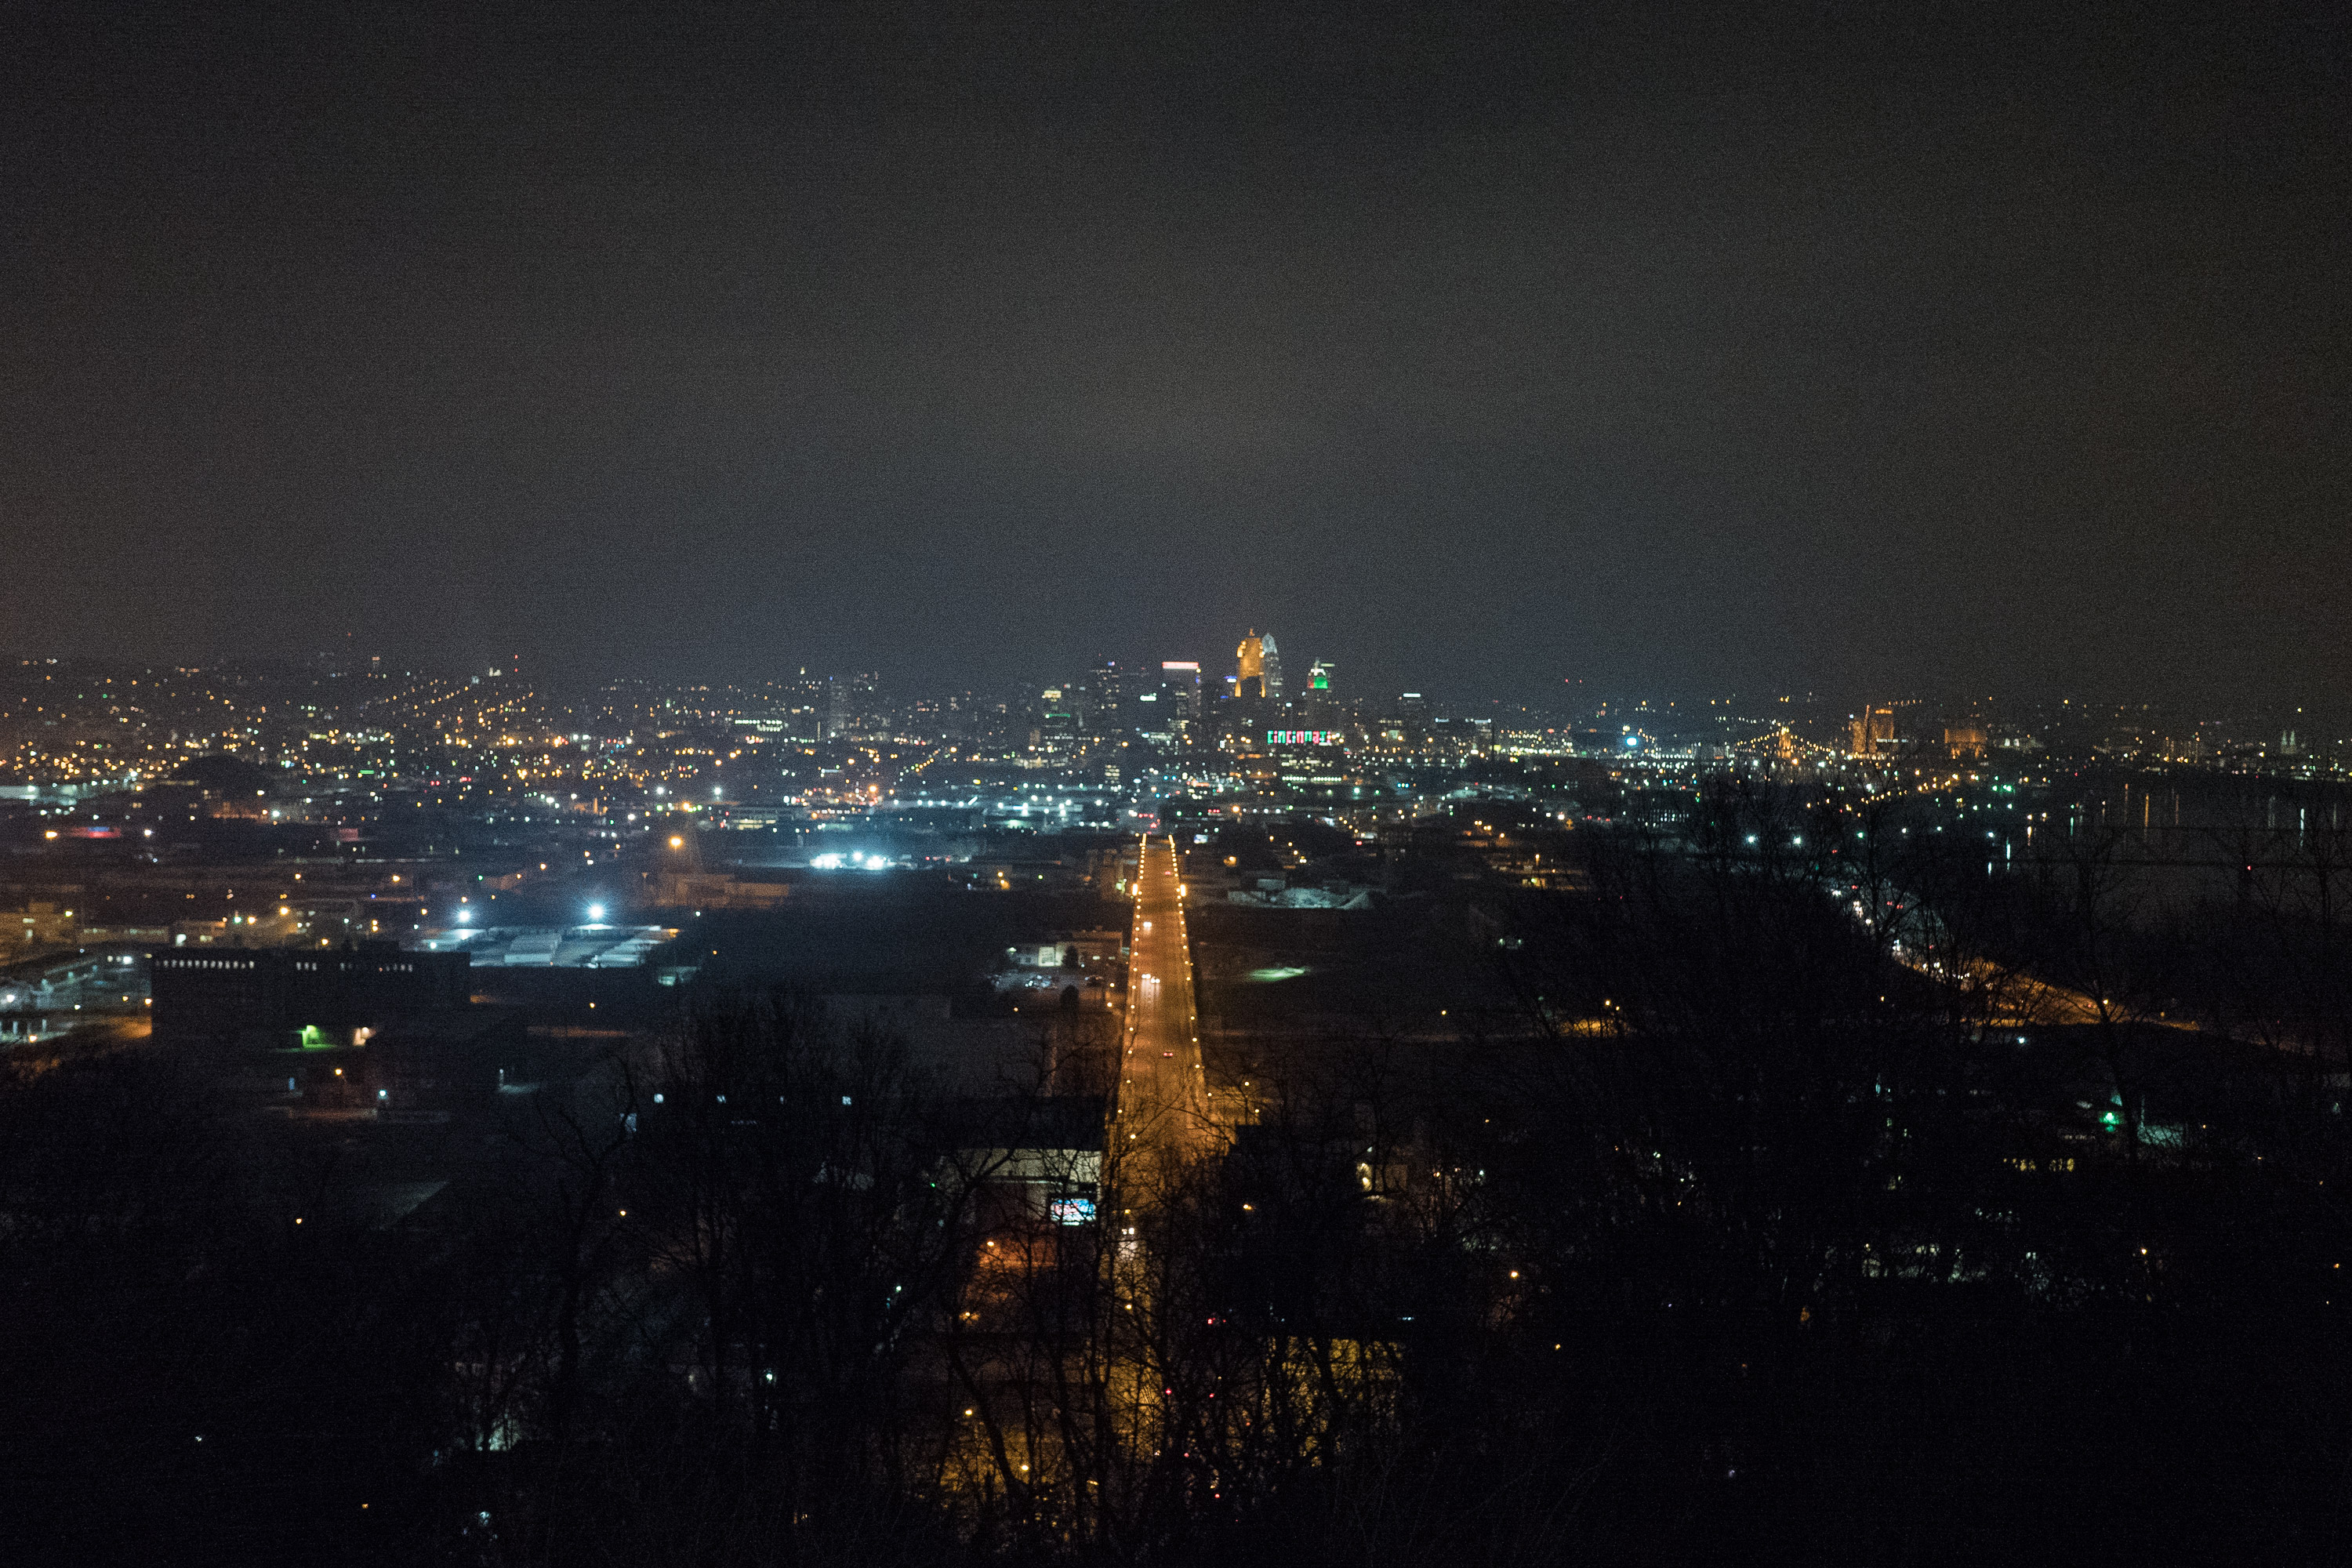 View from the Incline Public House